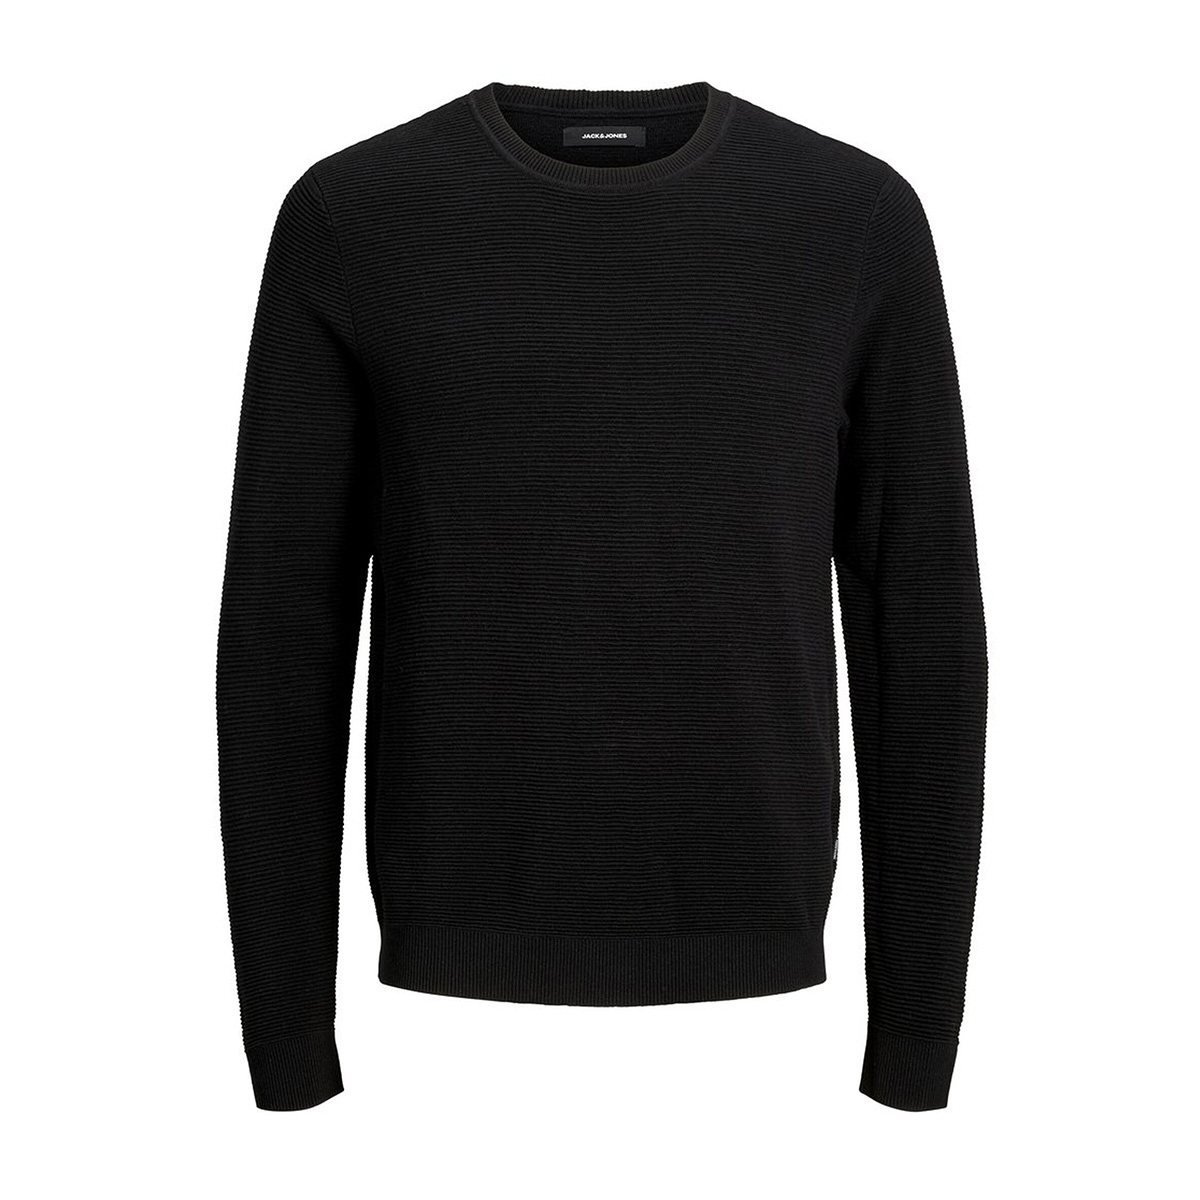 jjeliam knit crew neck noos 12157344 jack & jones trui black